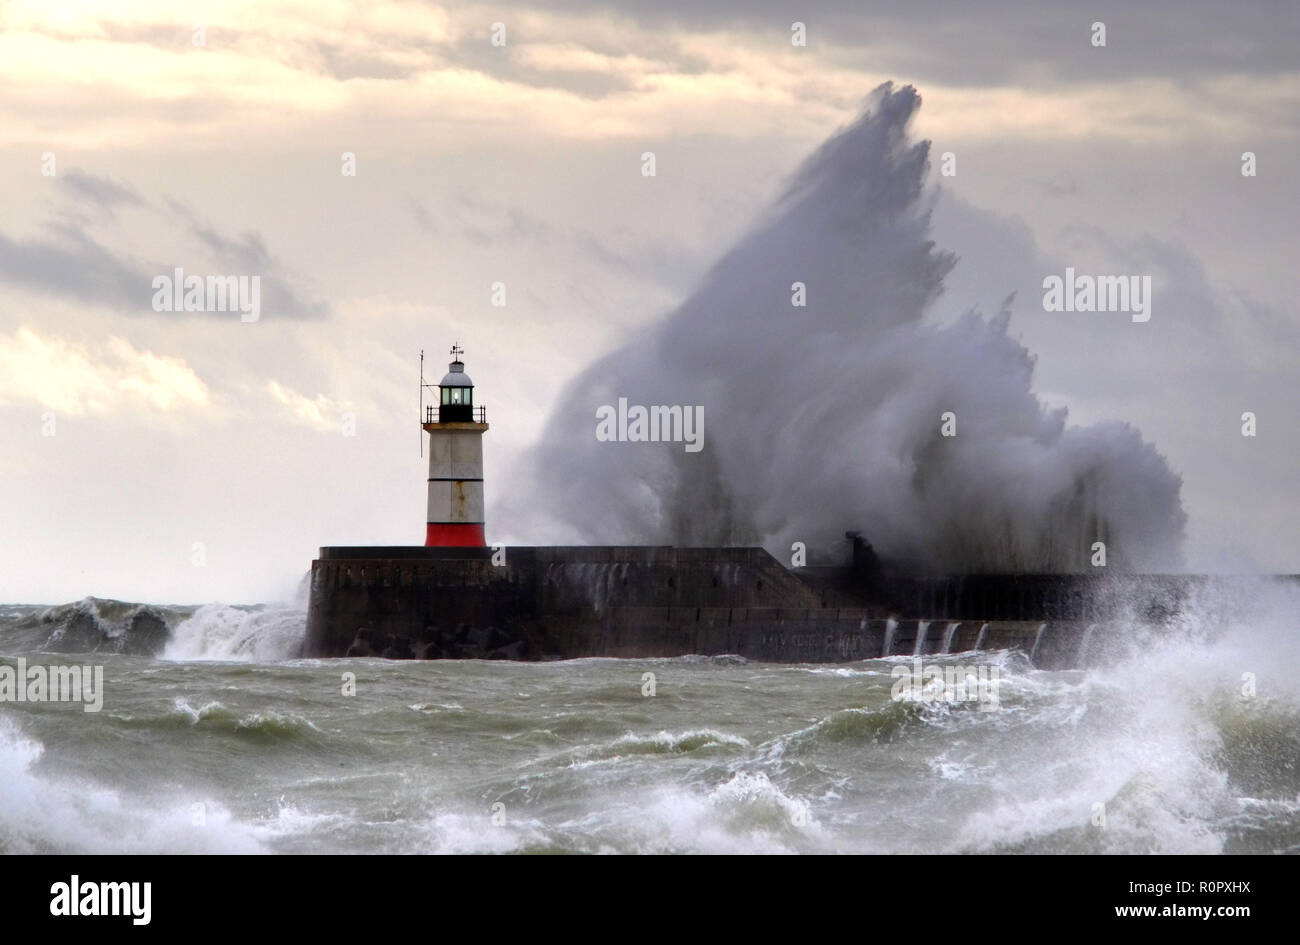 Newhaven, East Sussex, UK. 7th November 2018. Huge waves crash against the sea wall in Newhaven Harbour, East Sussex, as gale force winds batter the south coast. Credit: Peter Cripps/Alamy Live News - Stock Image